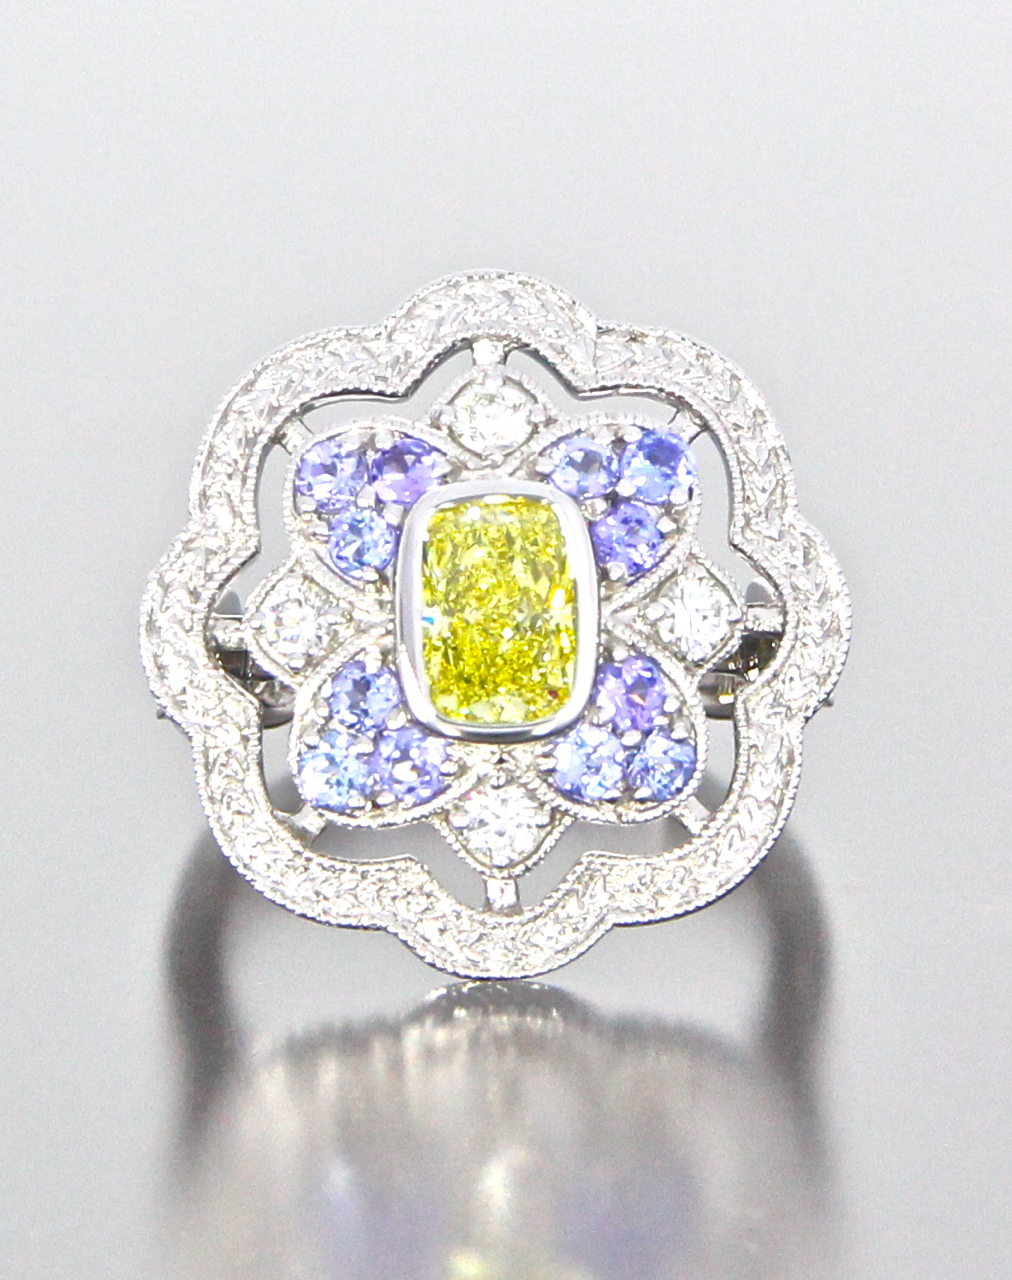 unique-antique-cushion-cut-yellow-diamond-halo-engagement-ring-craft-revival-jewelry-store-grand-rapids